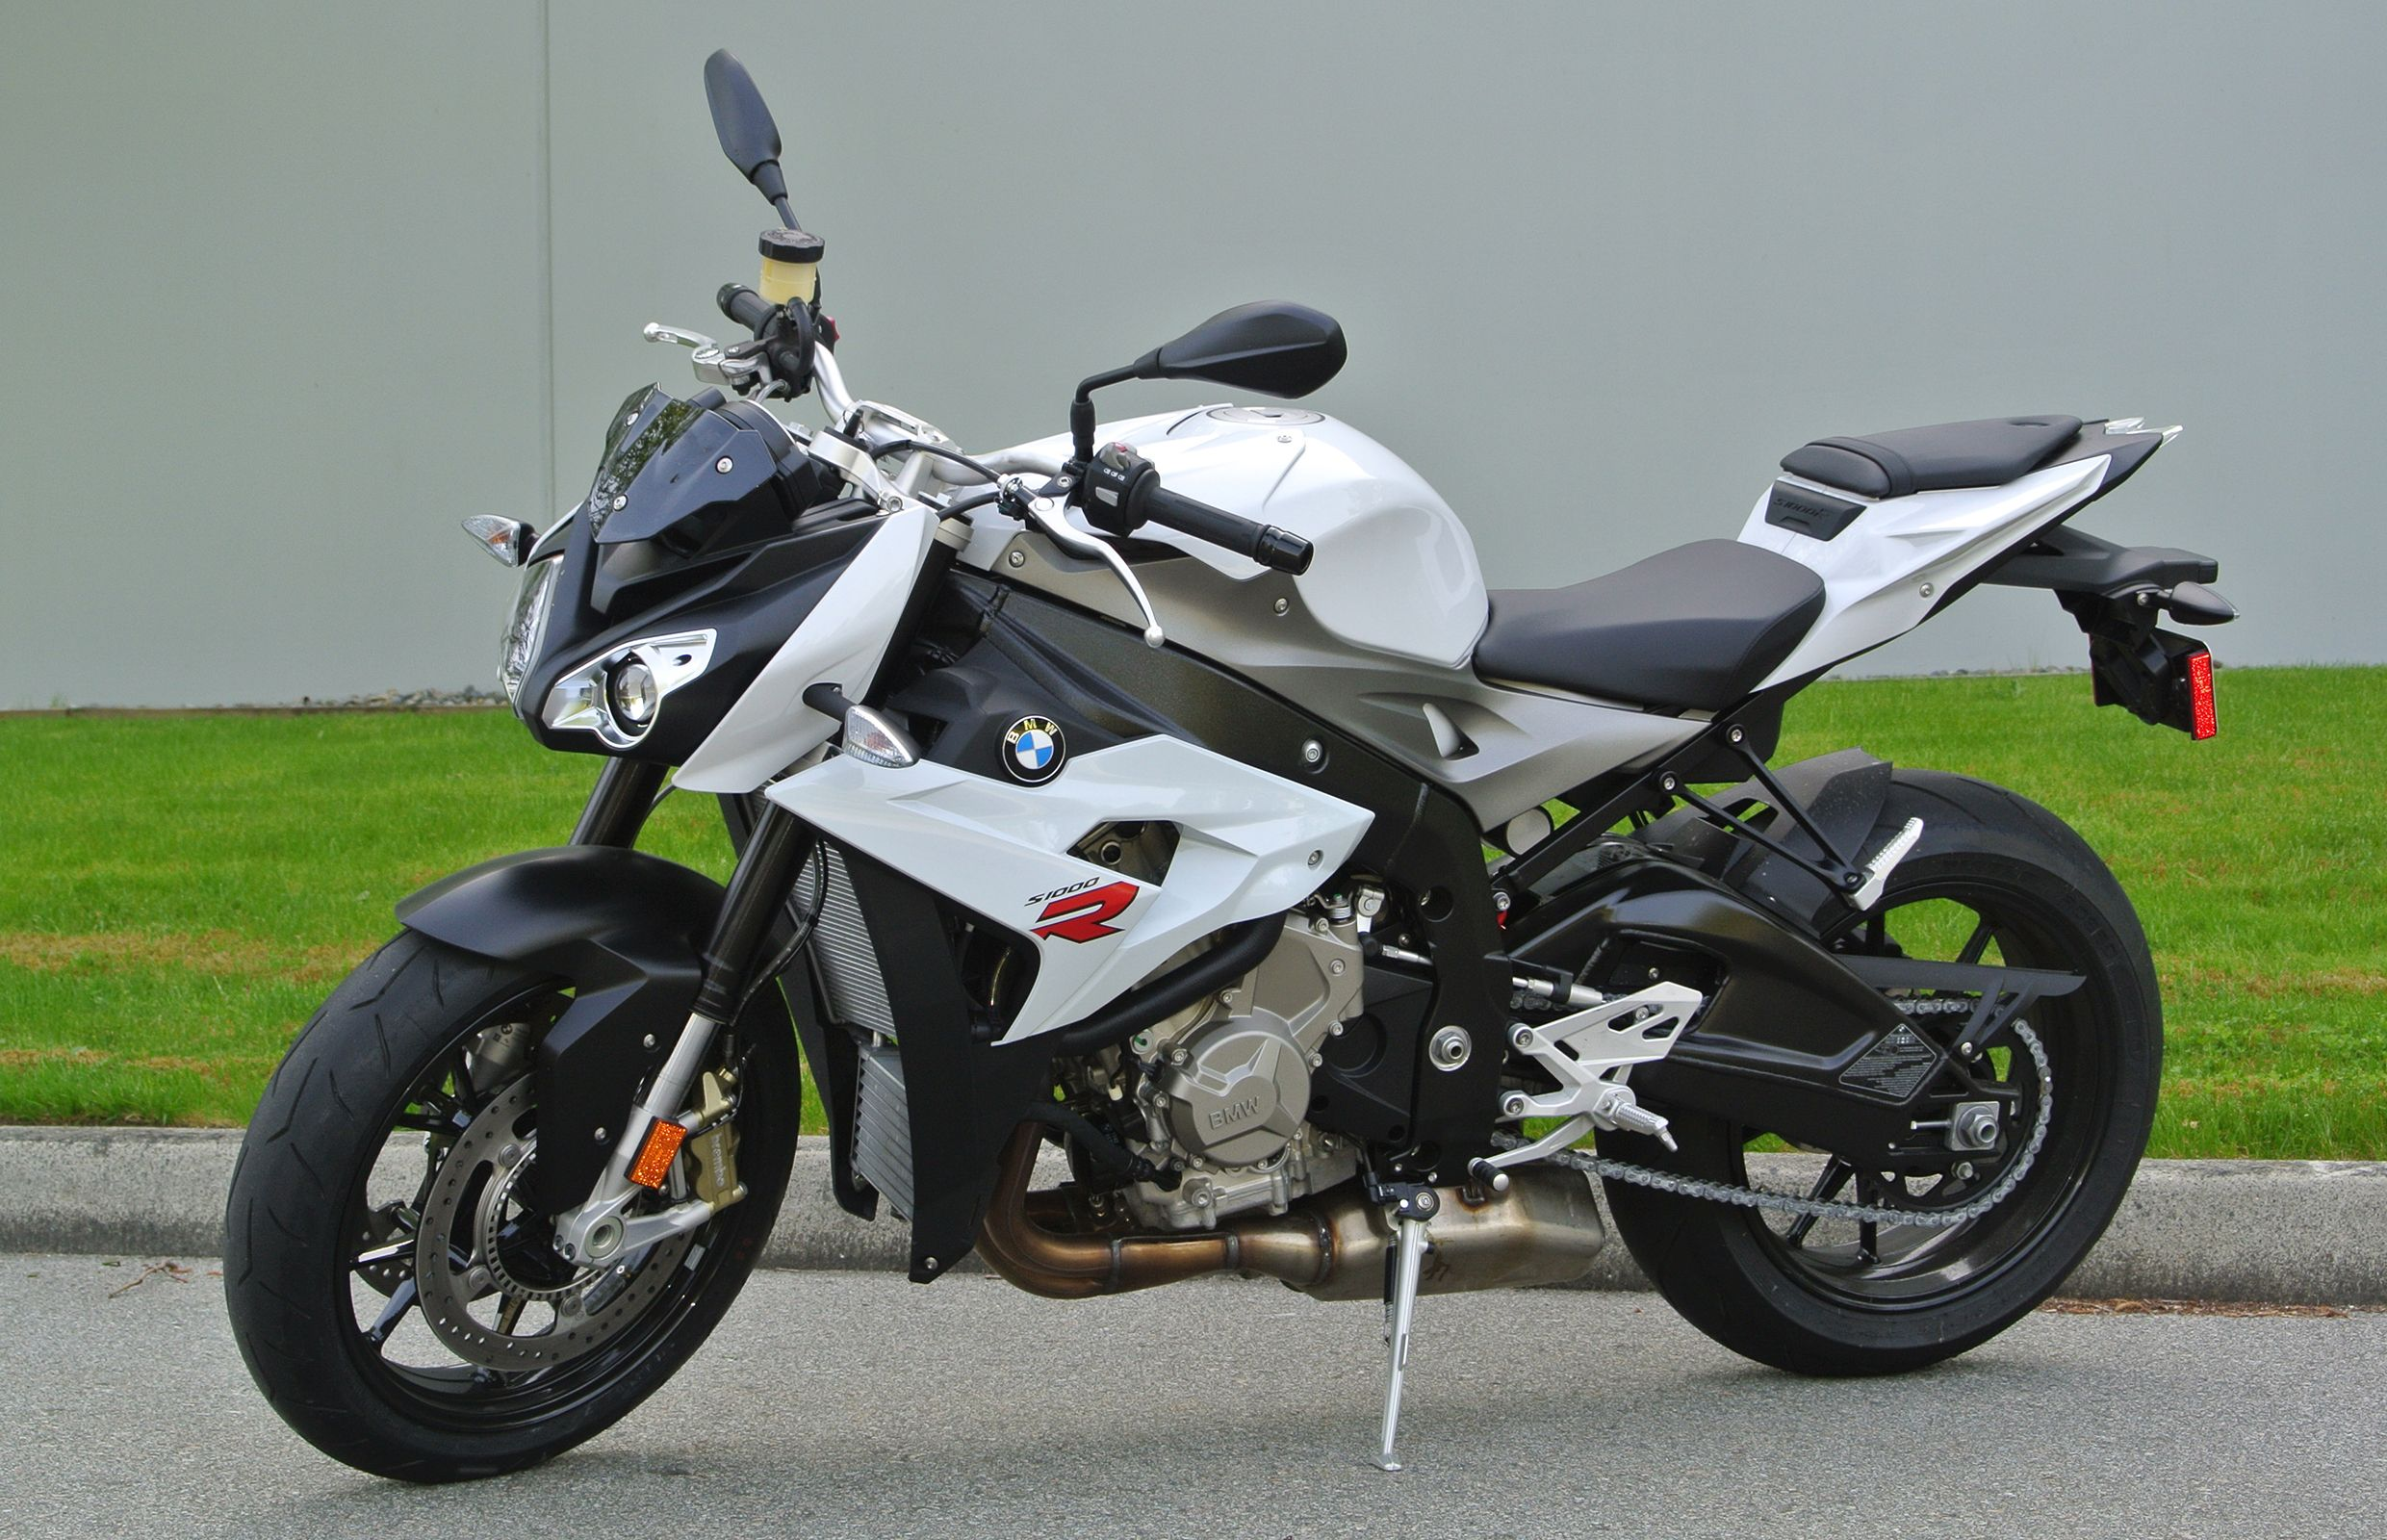 Bmw S1000r Hd Motorcycles Super Bikes Motorcycle